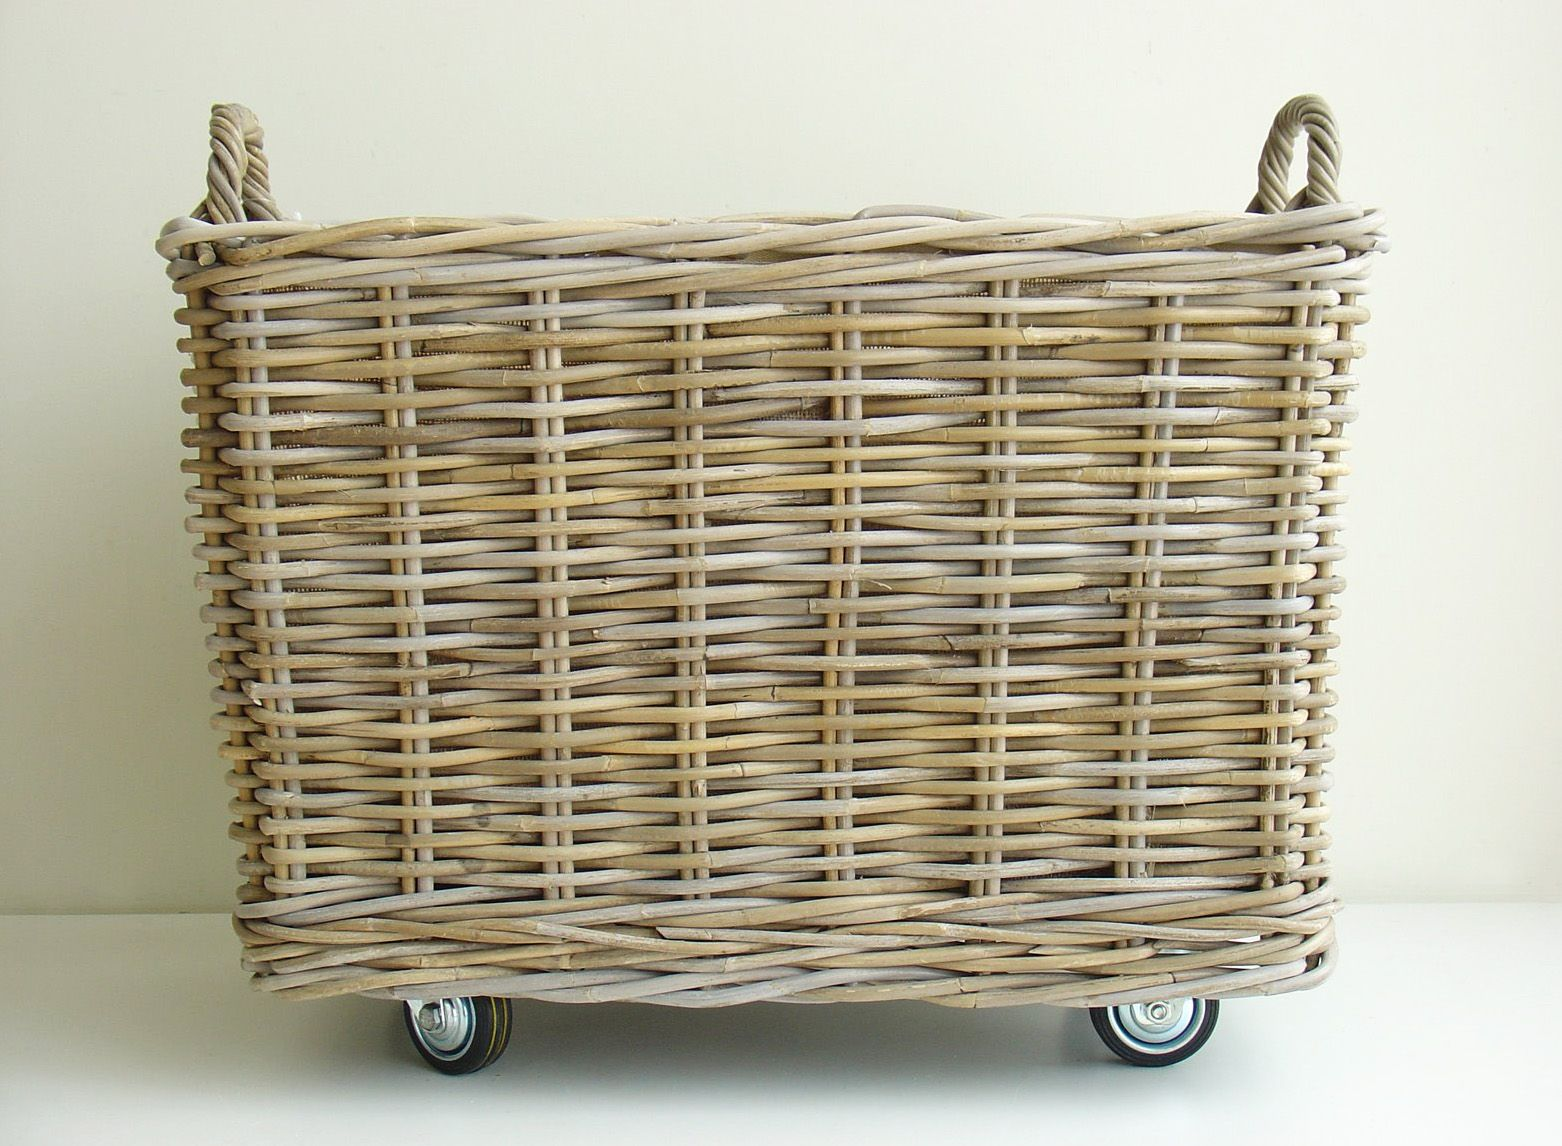 Rattan Basket On Casters Laundry Basket On Wheels Rattan Basket Laundry Hamper